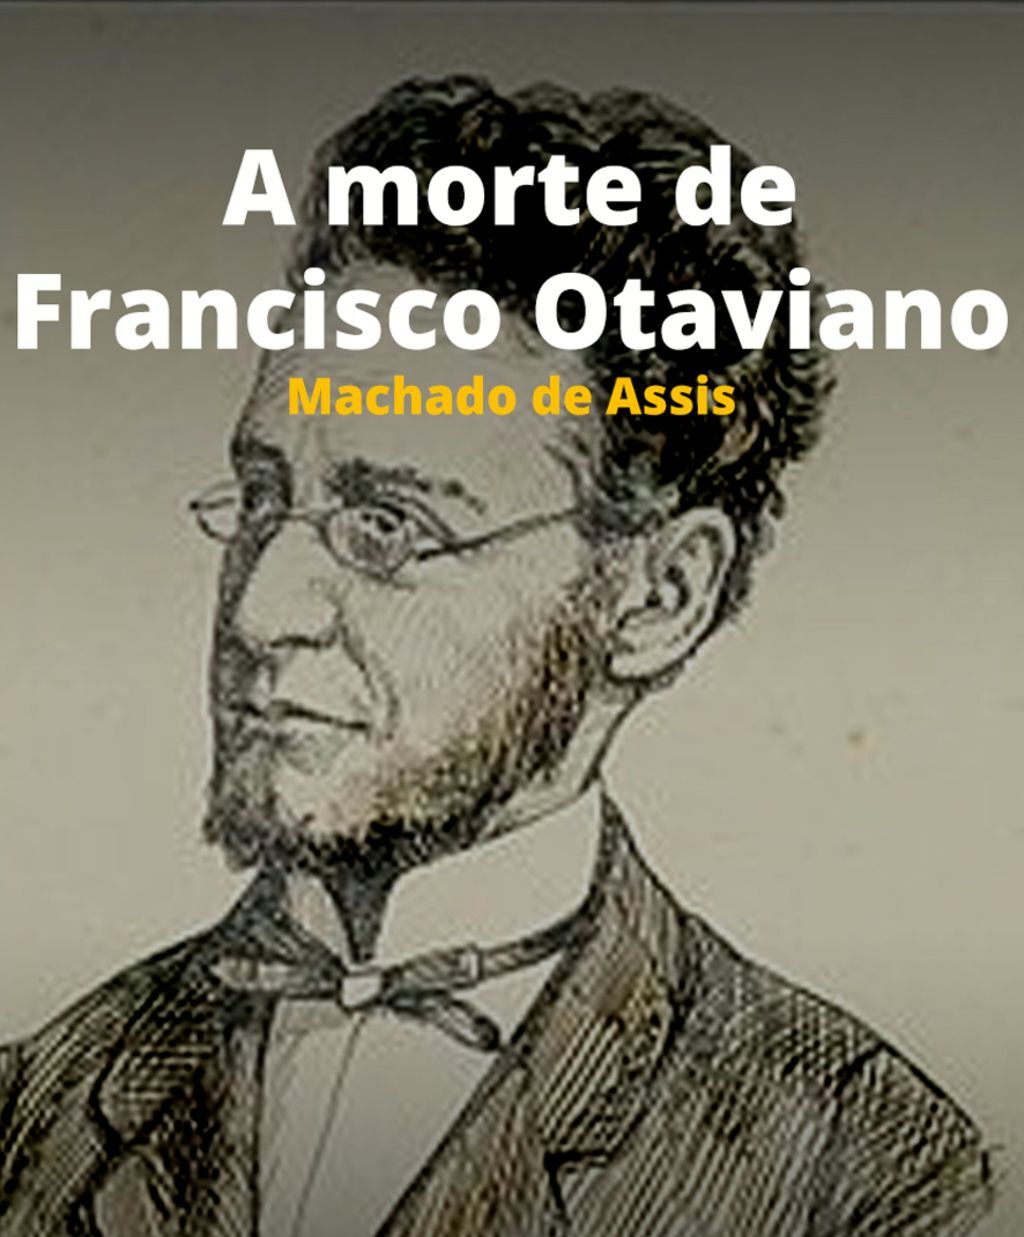 A morte de Francisco Otaviano (1889)